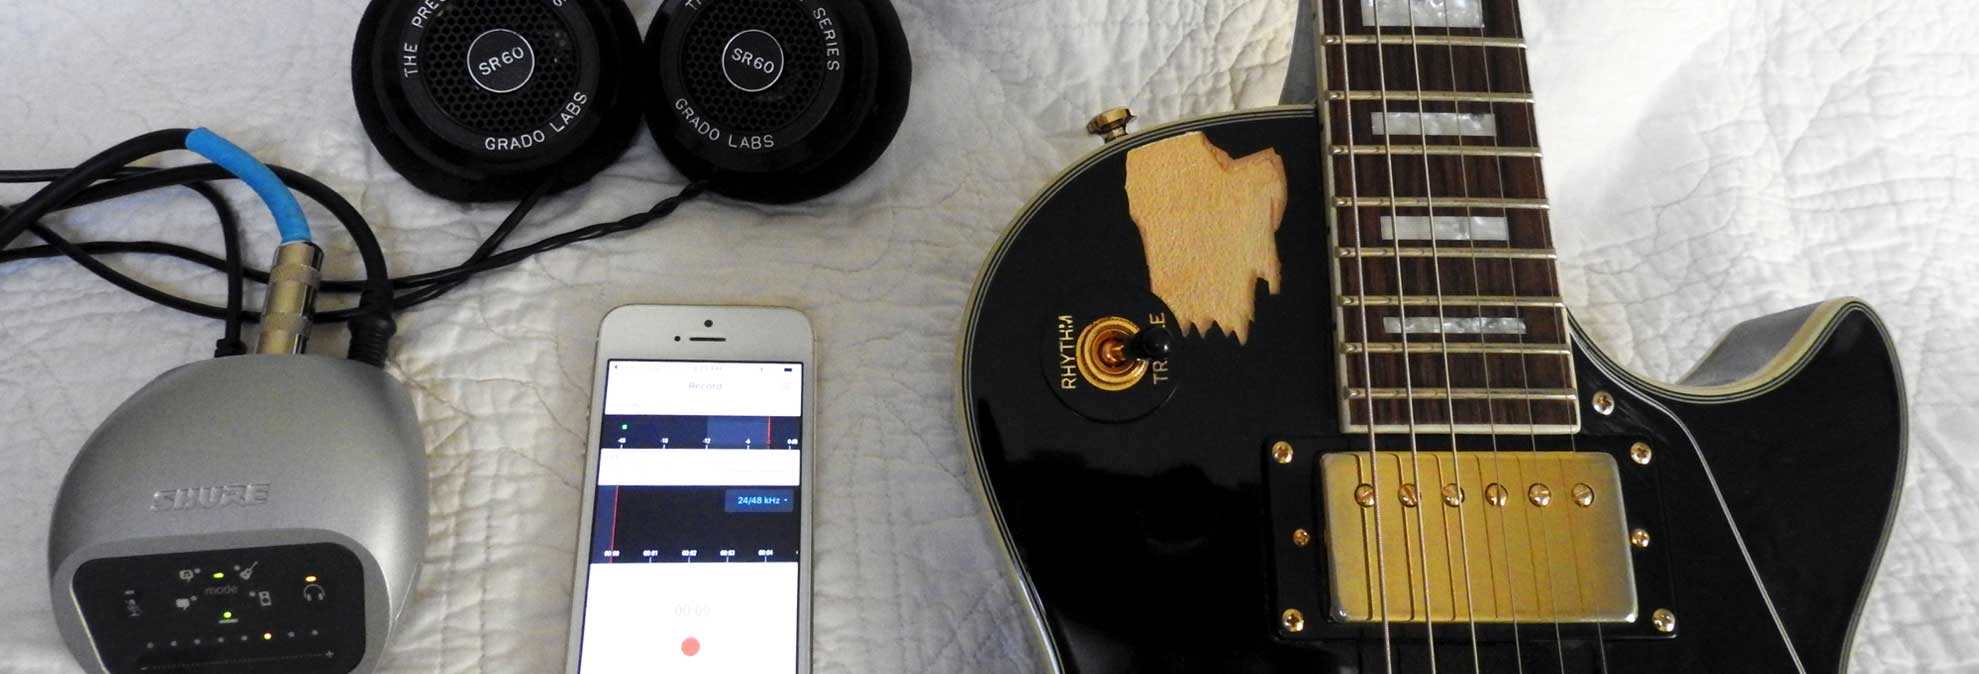 how to make music on your smartphone - consumer reports